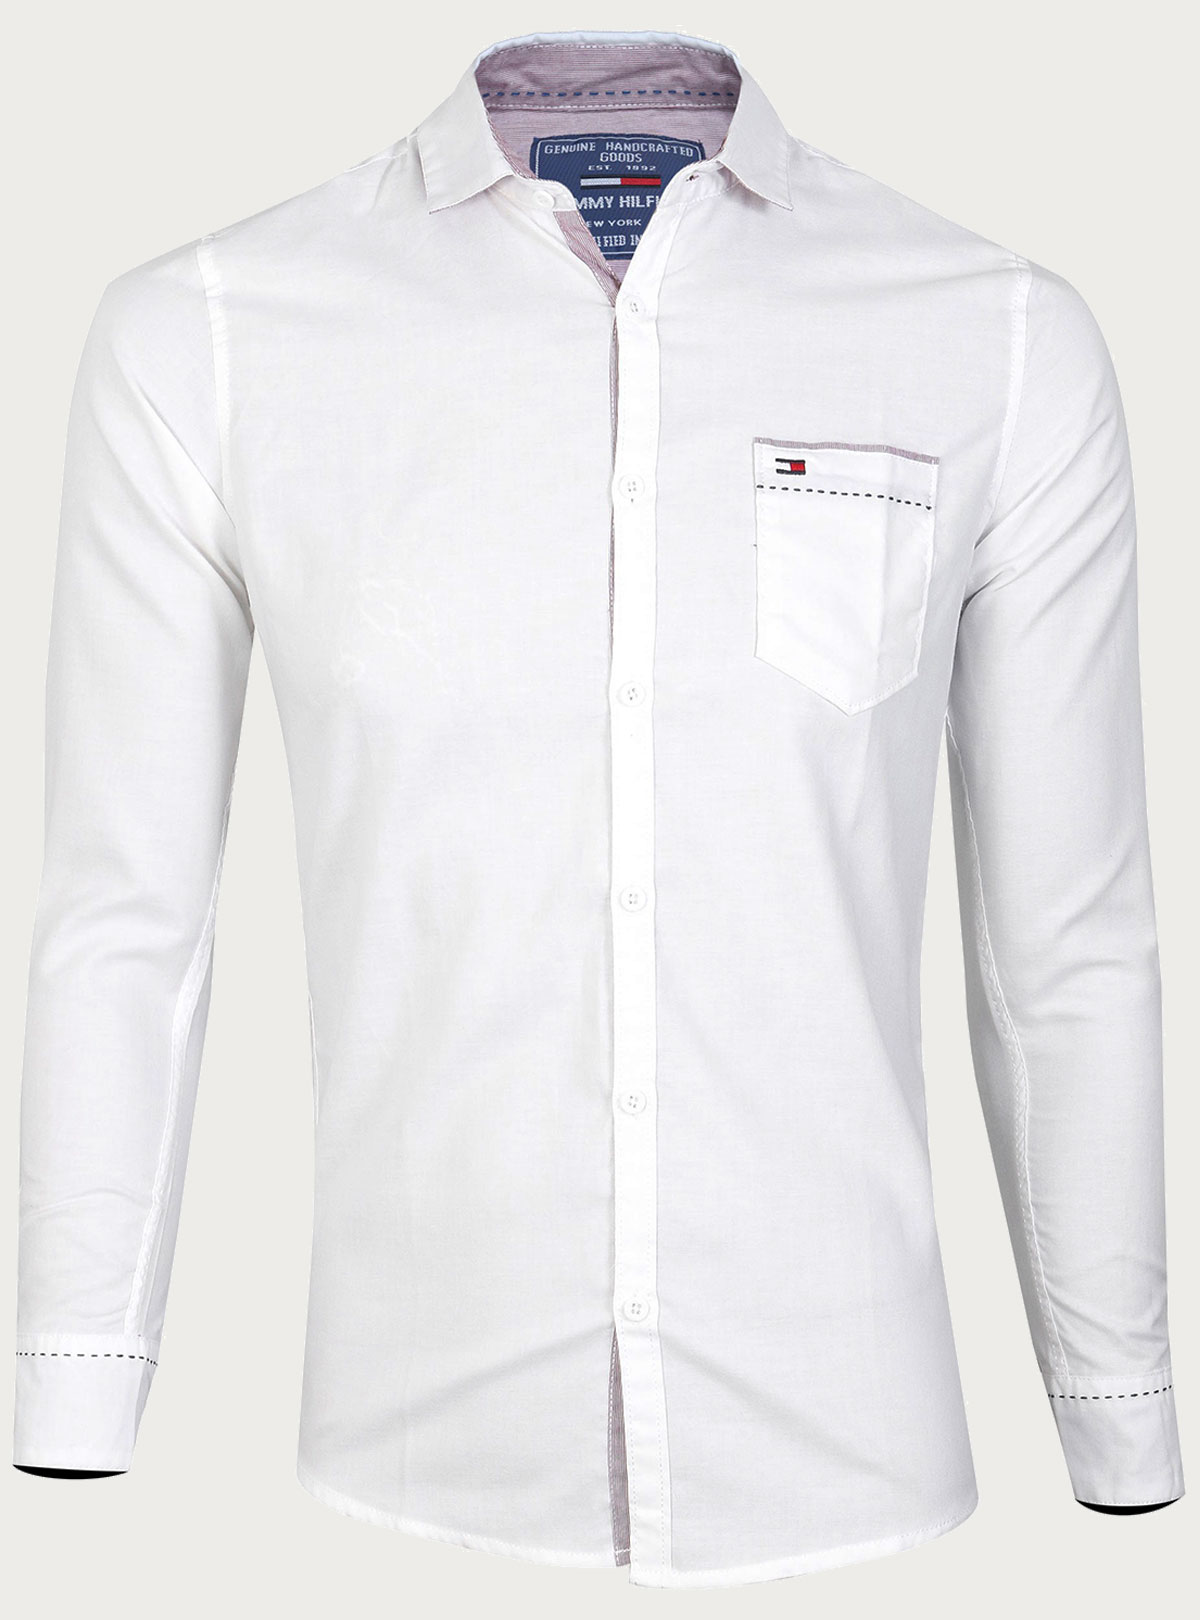 STYLISH CASUAL SHIRT BY-TOMMY HILFIGER